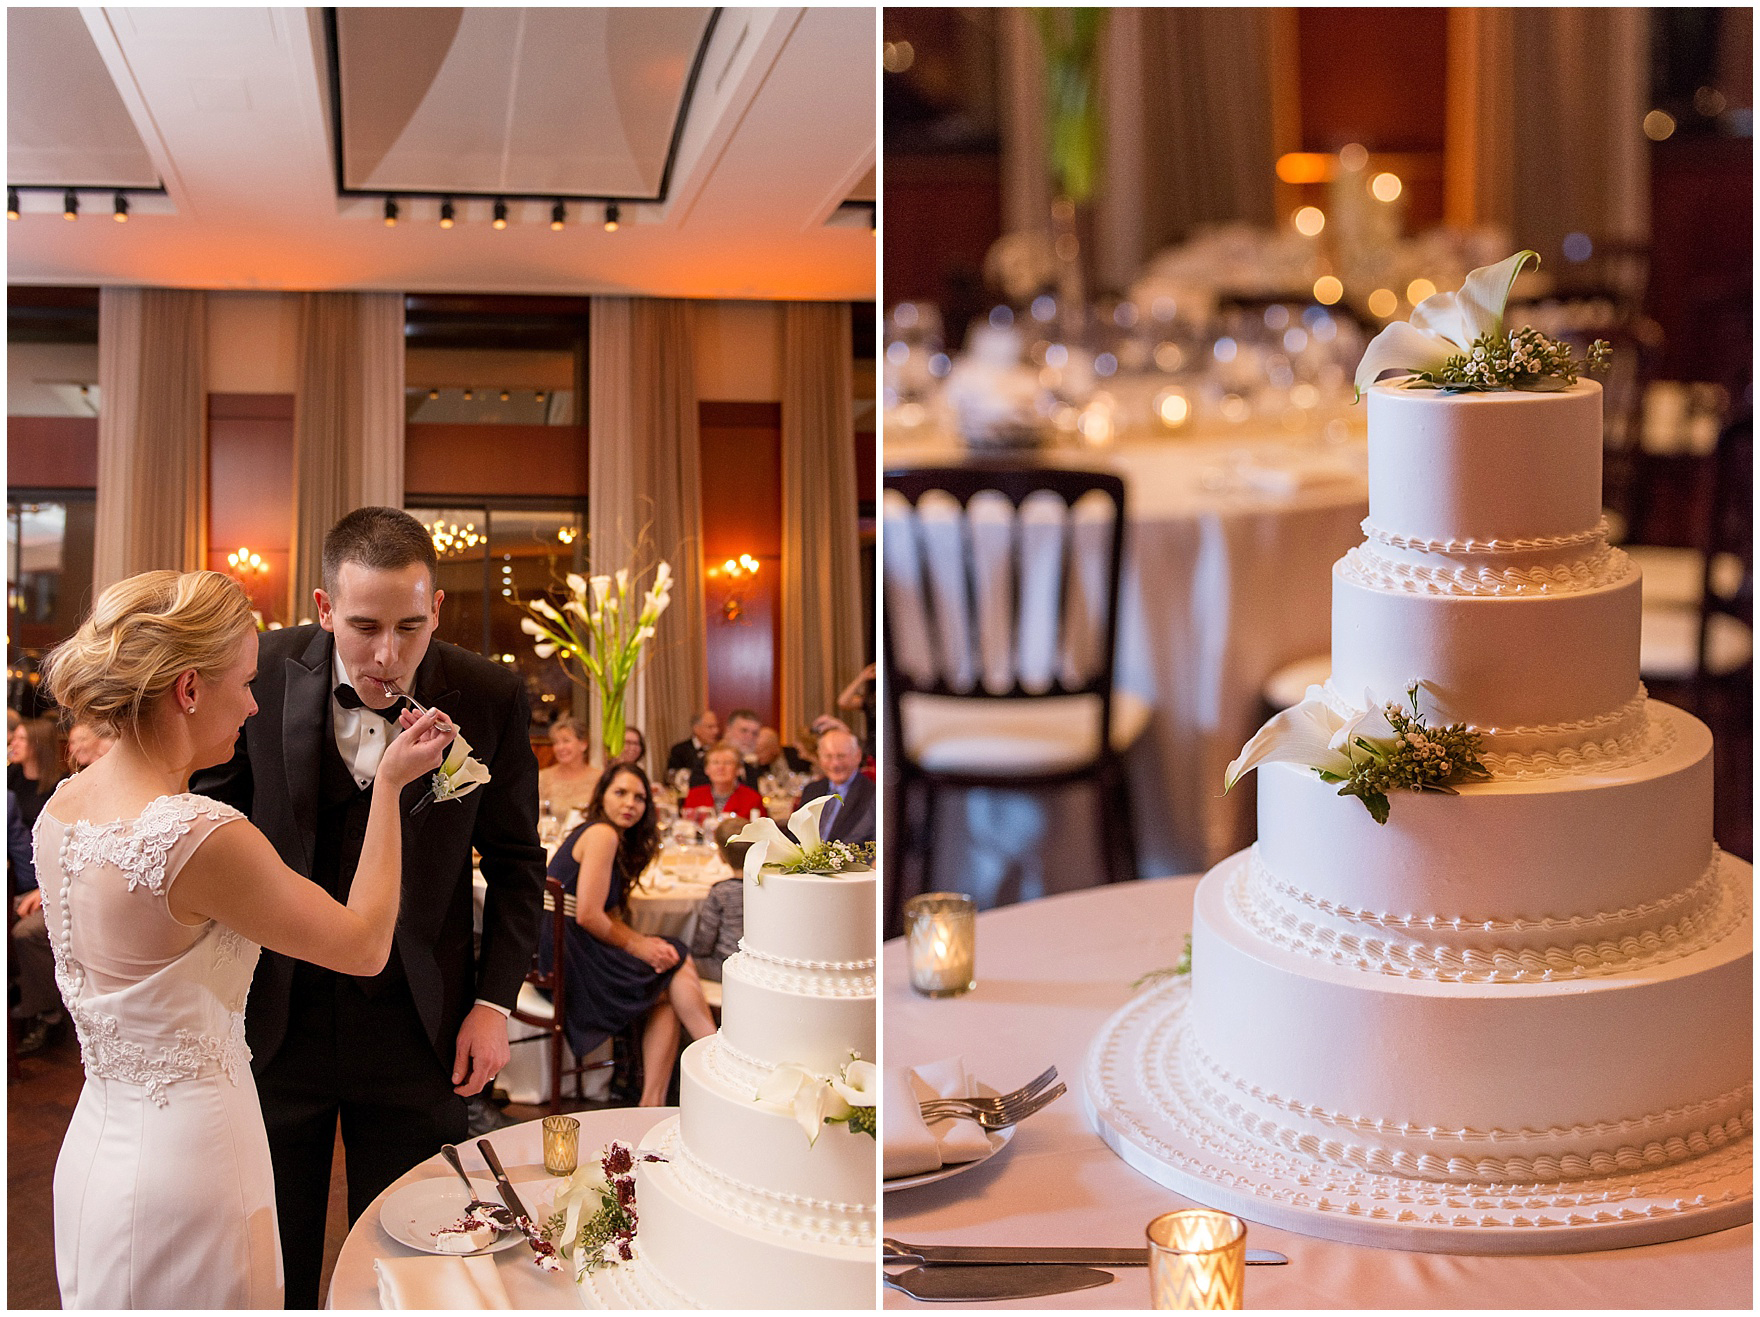 The bride and groom taste their cake during a Newberry Library Chicago wedding reception.